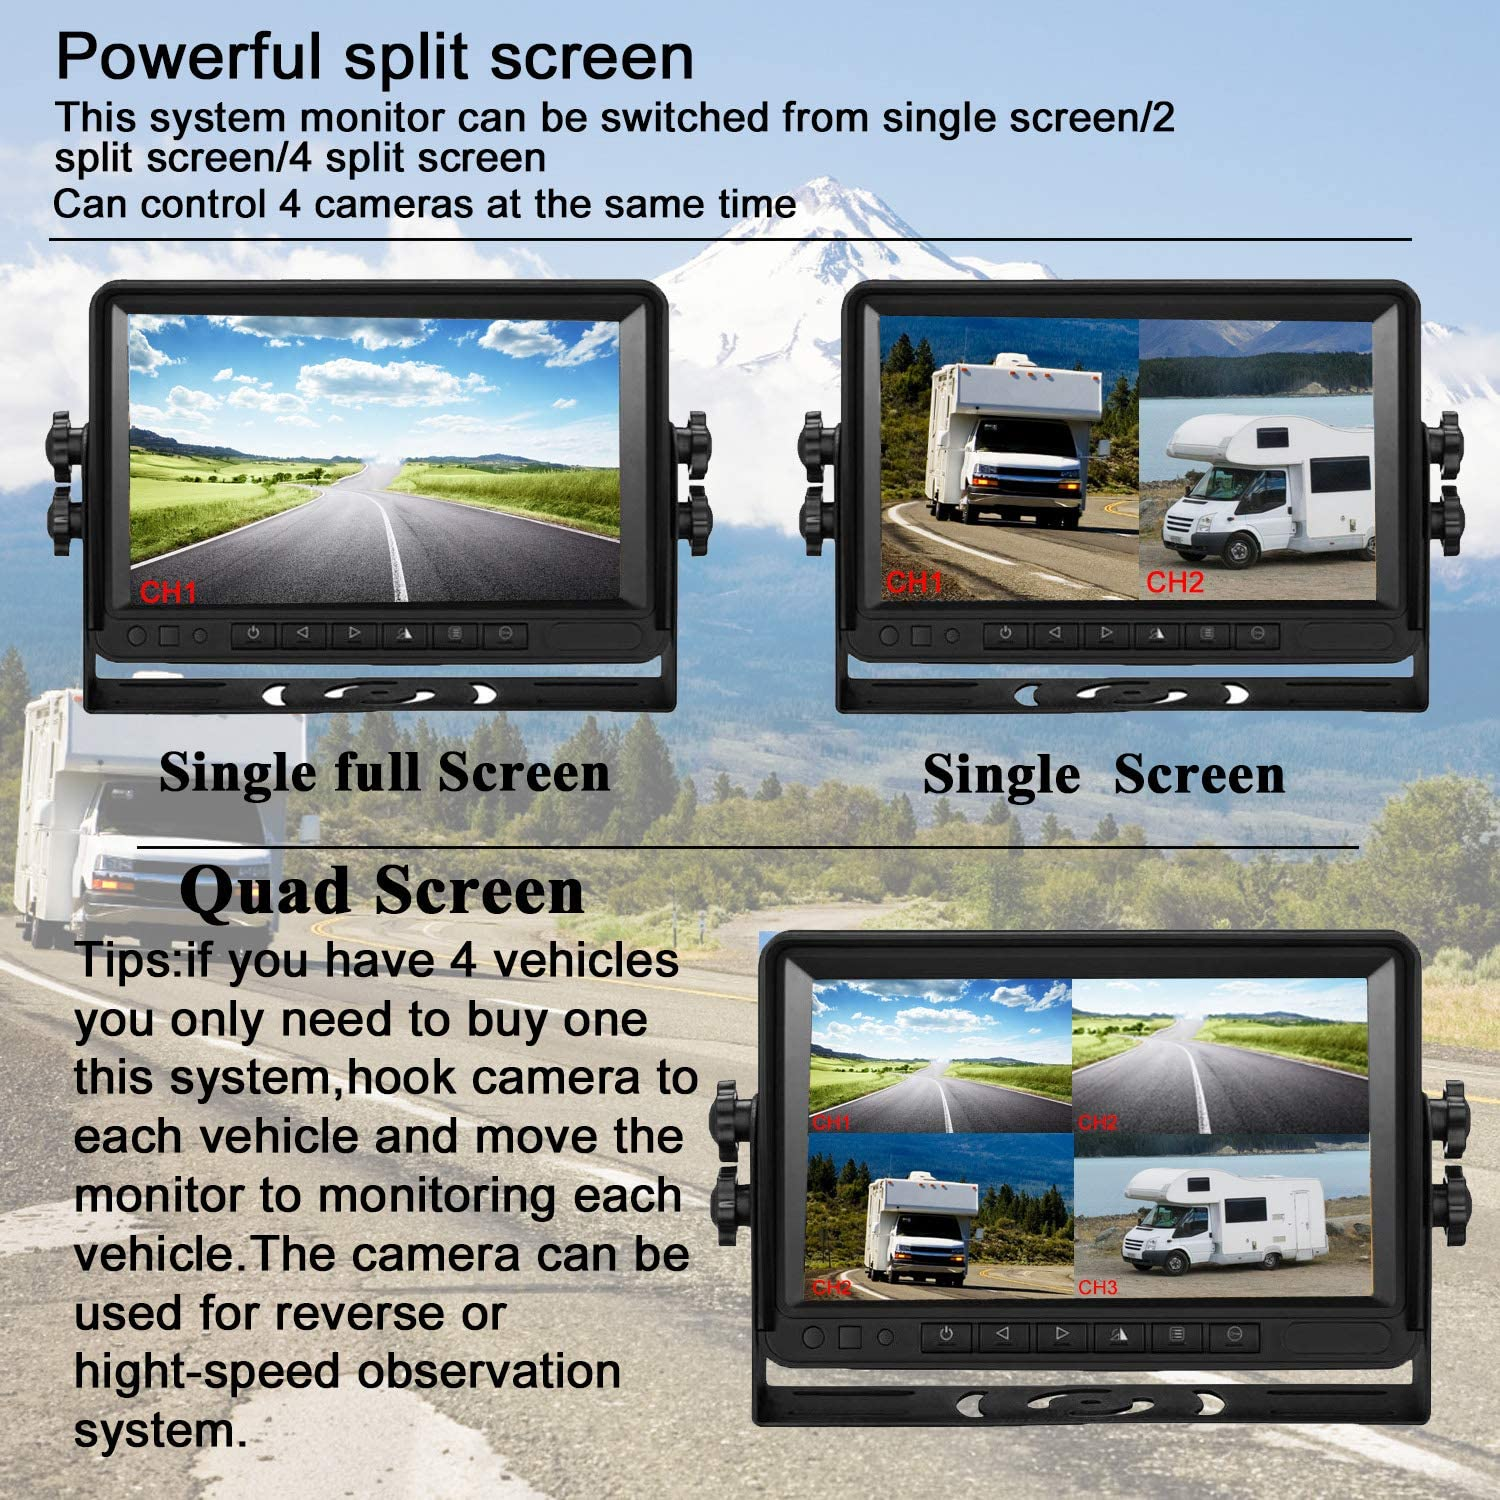 DoHonest FHD 1080P Digital Wireless 4 Backup Camera and 7 Monitor Kit Split Screen for Trailers,RVs,Trucks,Campers,5th Wheels Highway Monitoring System IP69K Waterproof Super Night Vision